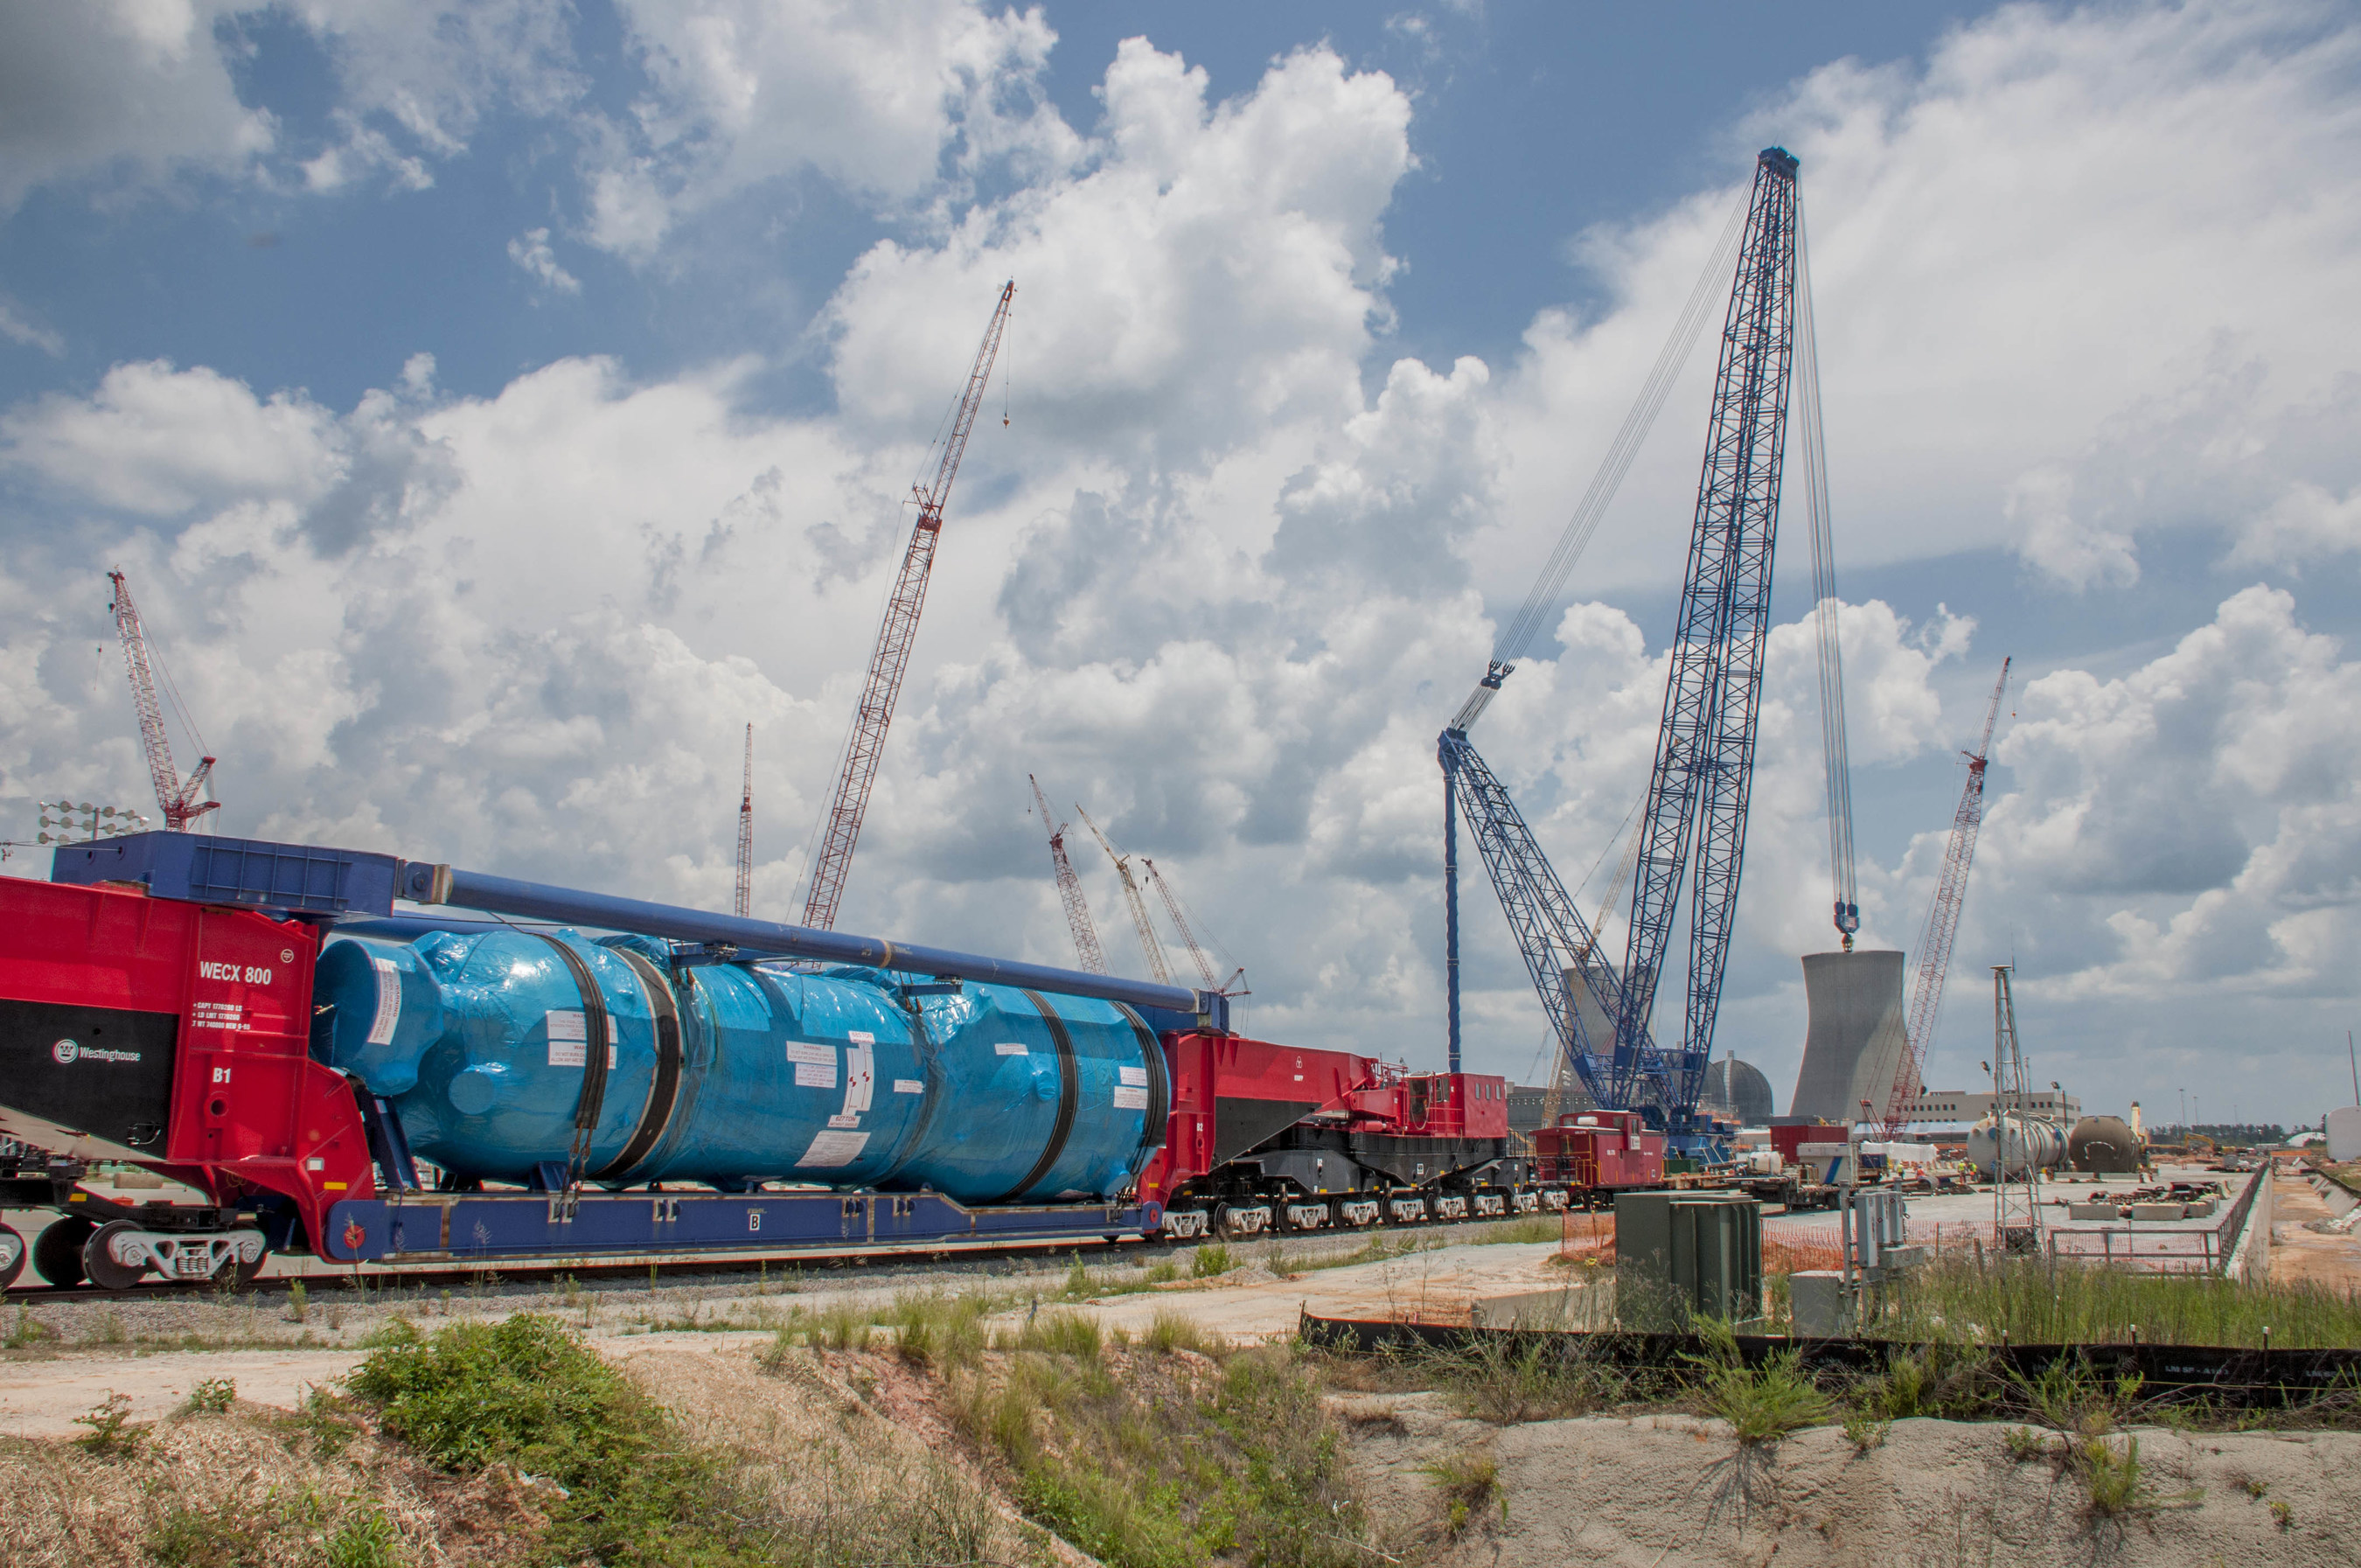 1.3 million-pound Unit 3 Steam Generator arrives from South Korea